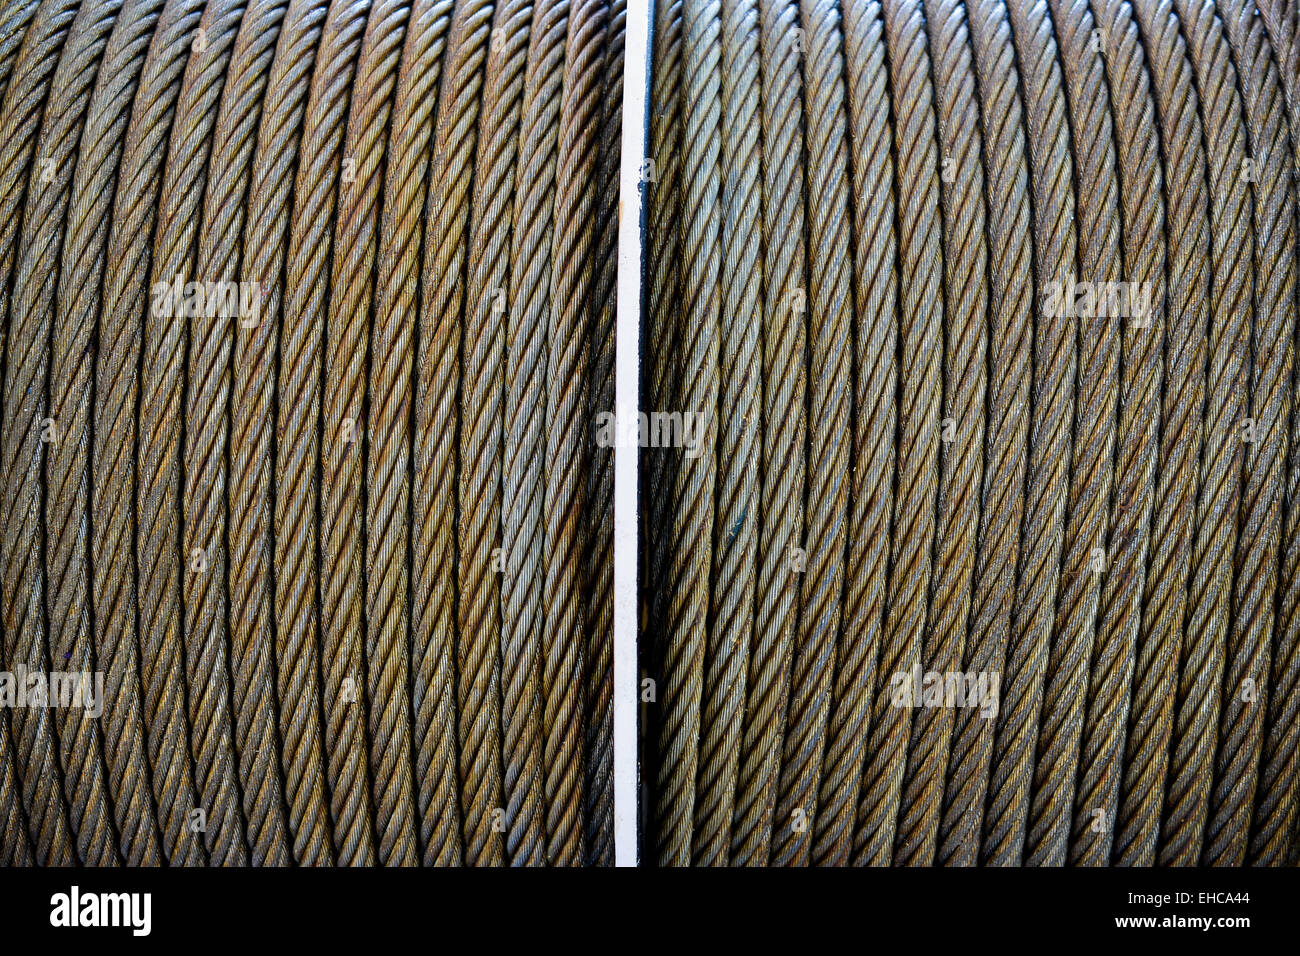 thick wire coil Stock Photo: 79562004 - Alamy